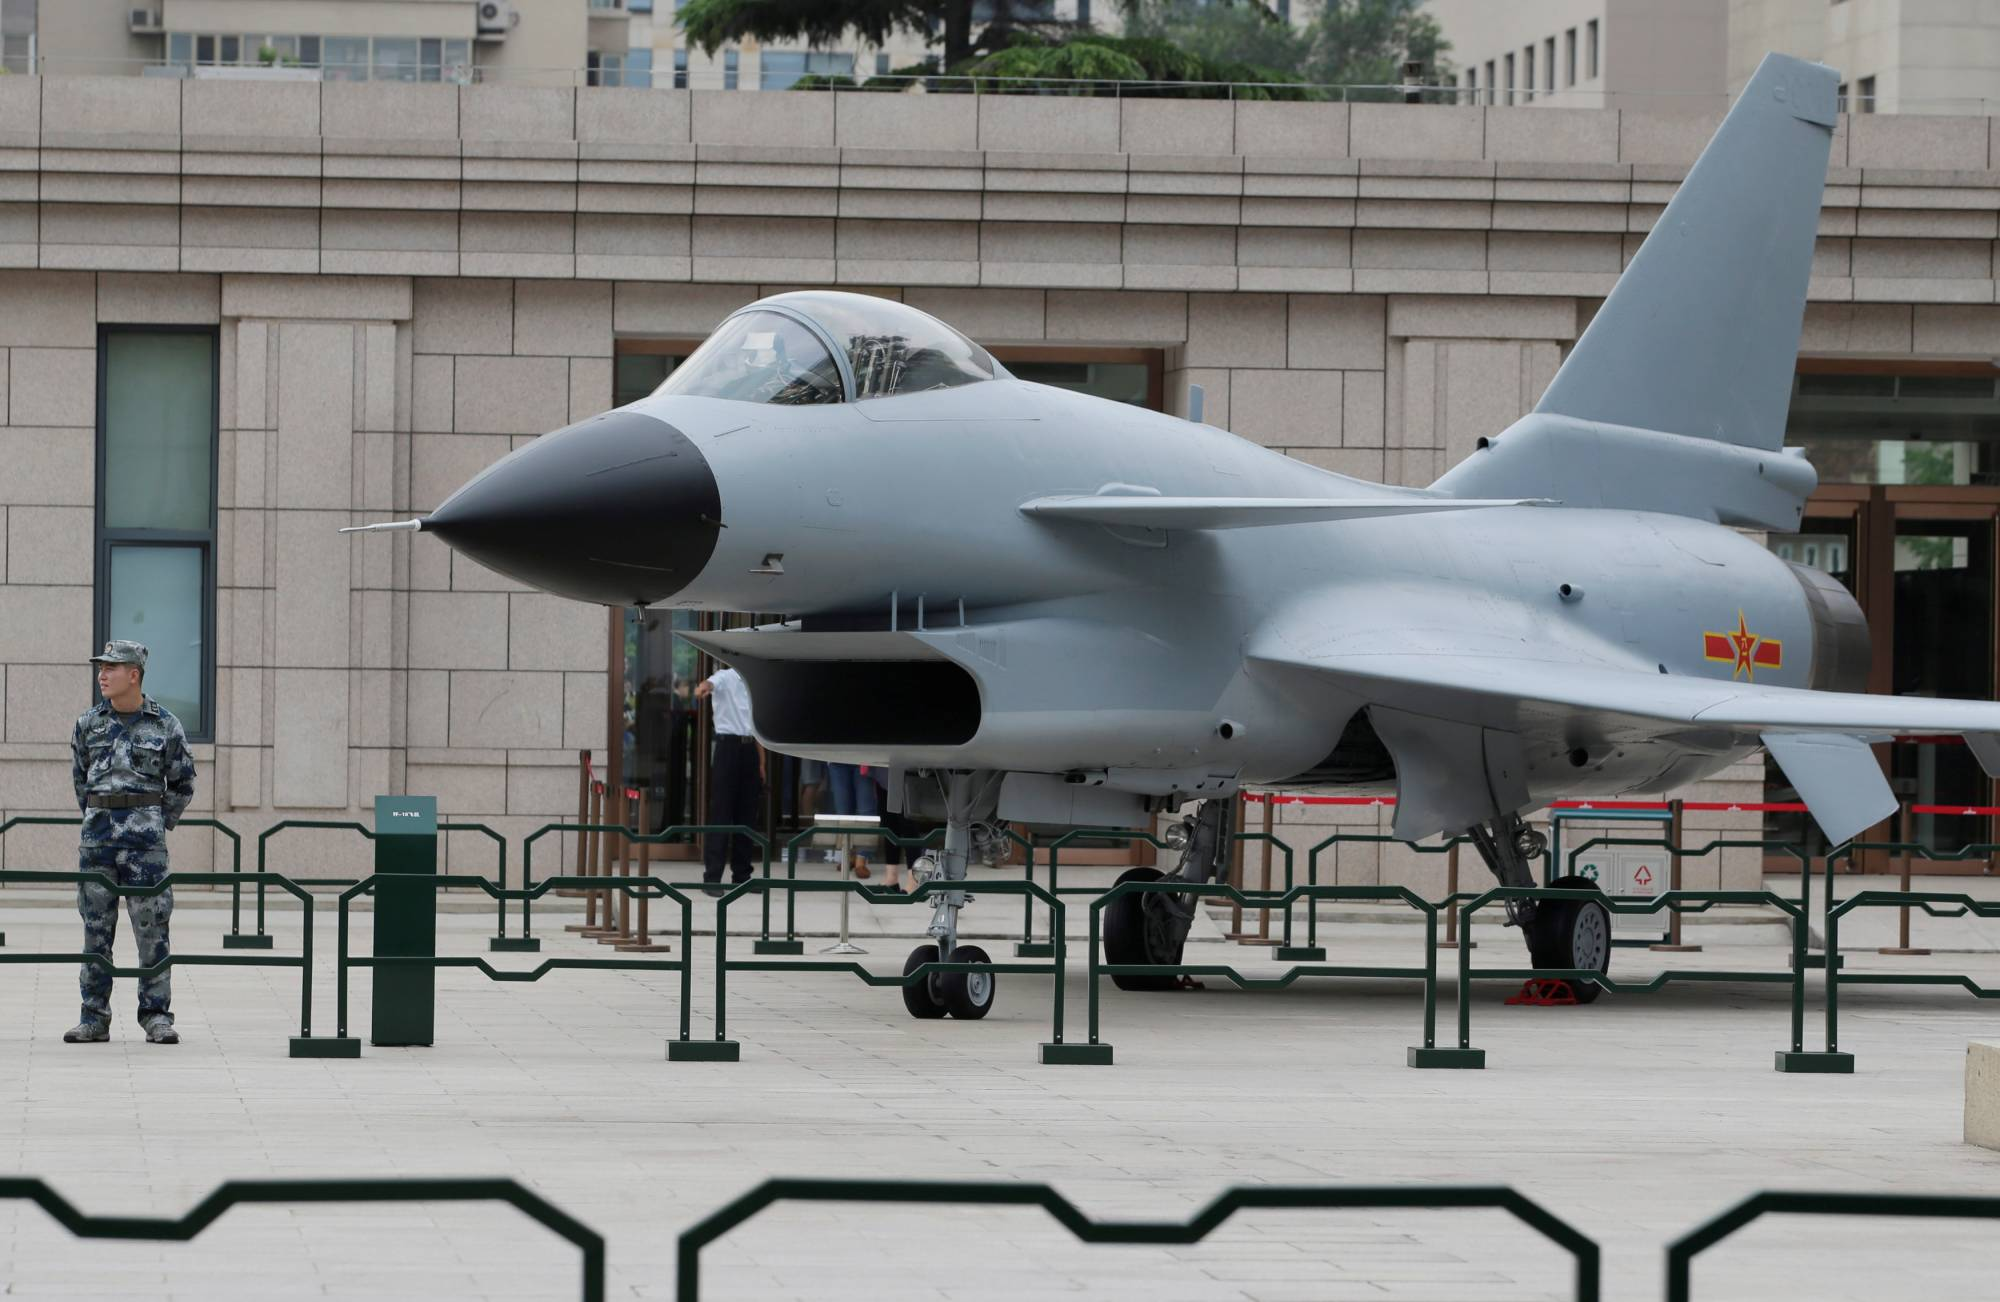 A soldier stands next to a J-10 fighter jet during an exhibition outside the Military Museum of the Chinese People's Revolution in Beijing. | REUTERS